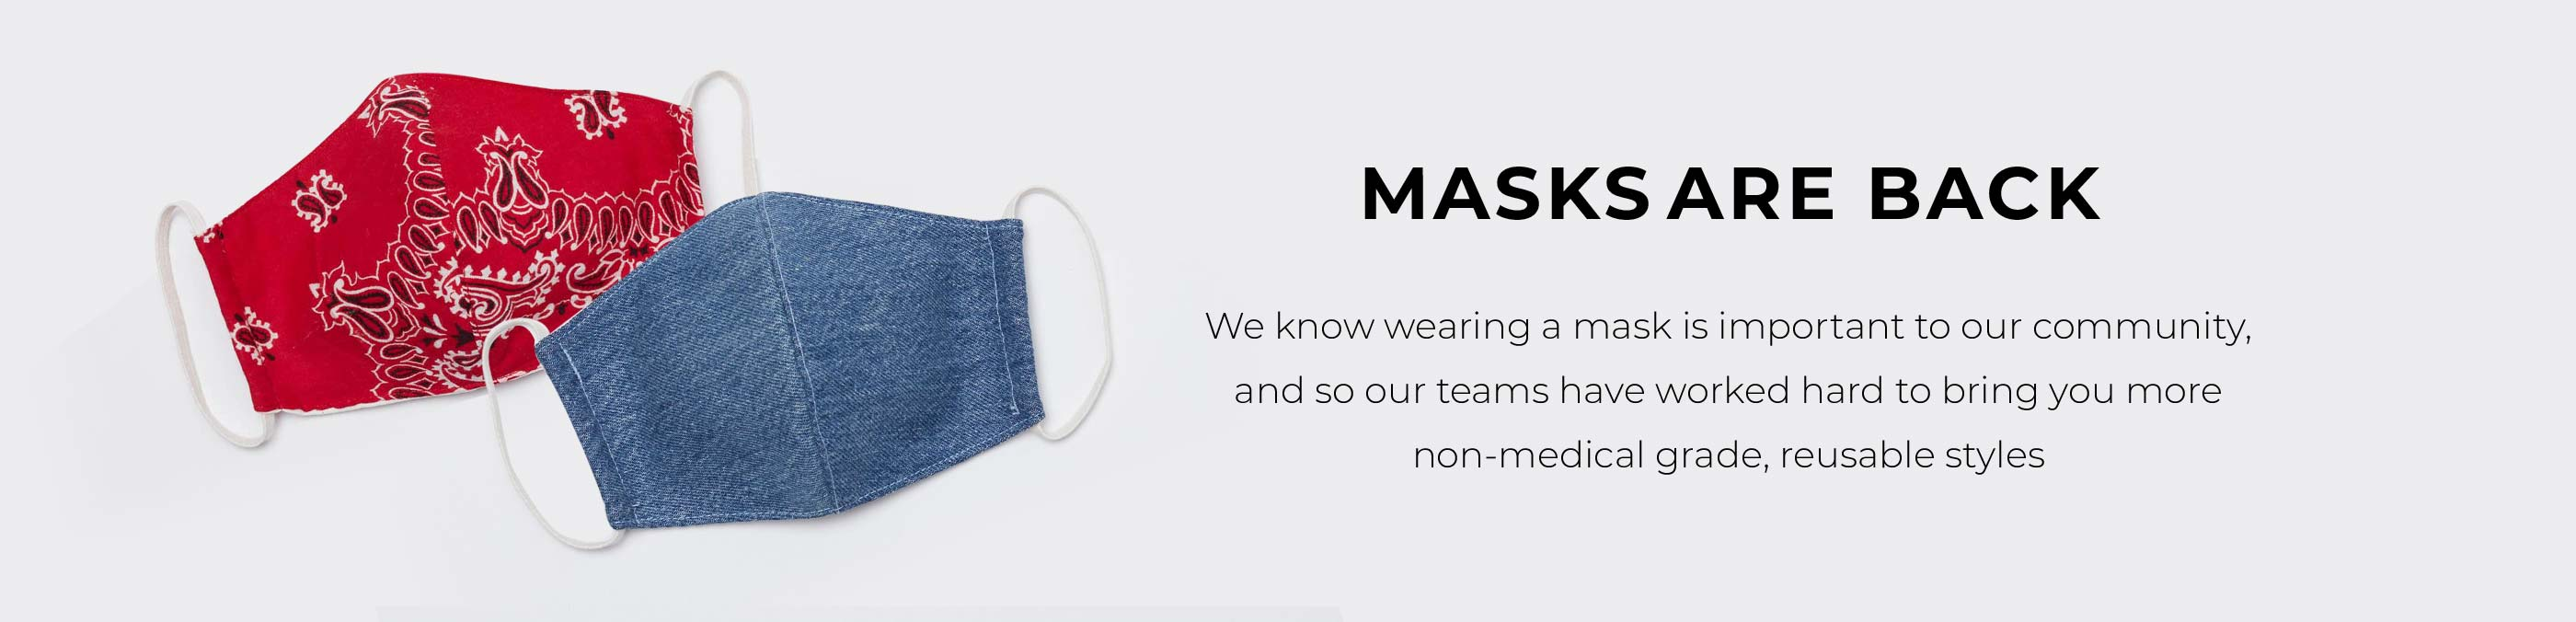 Masks Are Back